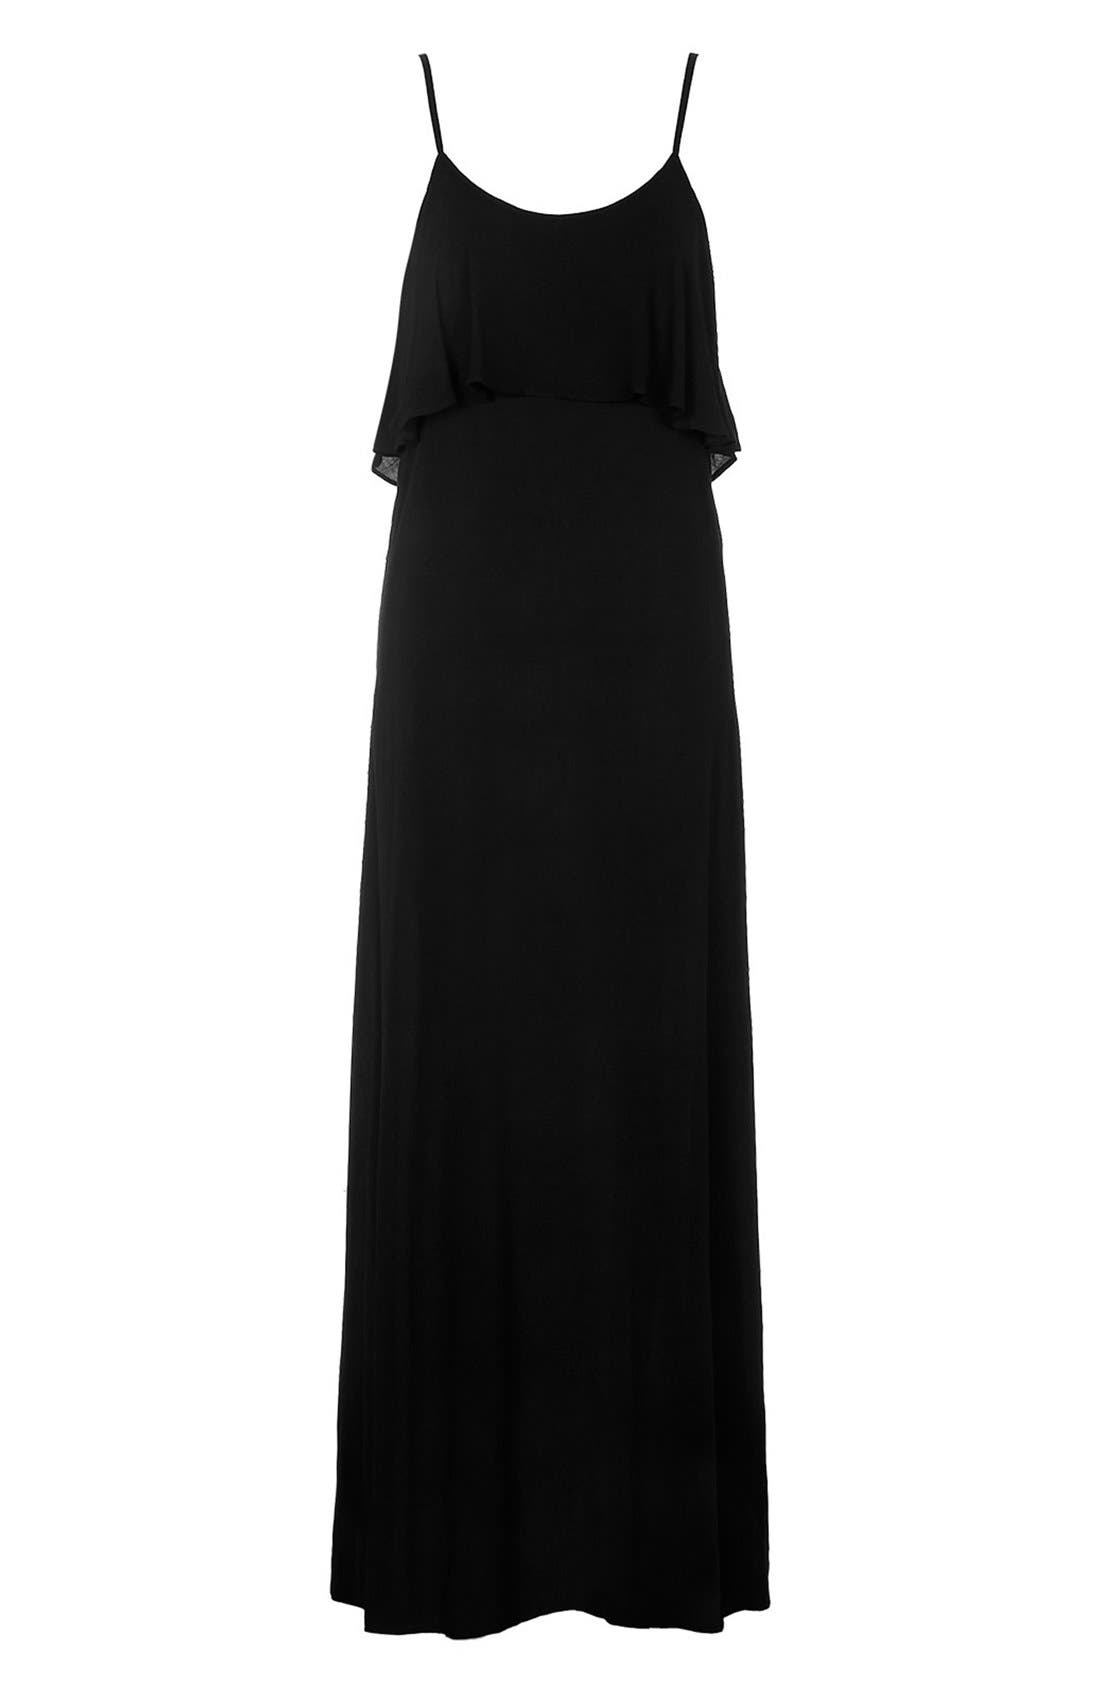 Alternate Image 3  - KENDALL + KYLIE at Topshop Layered Maxi Dress